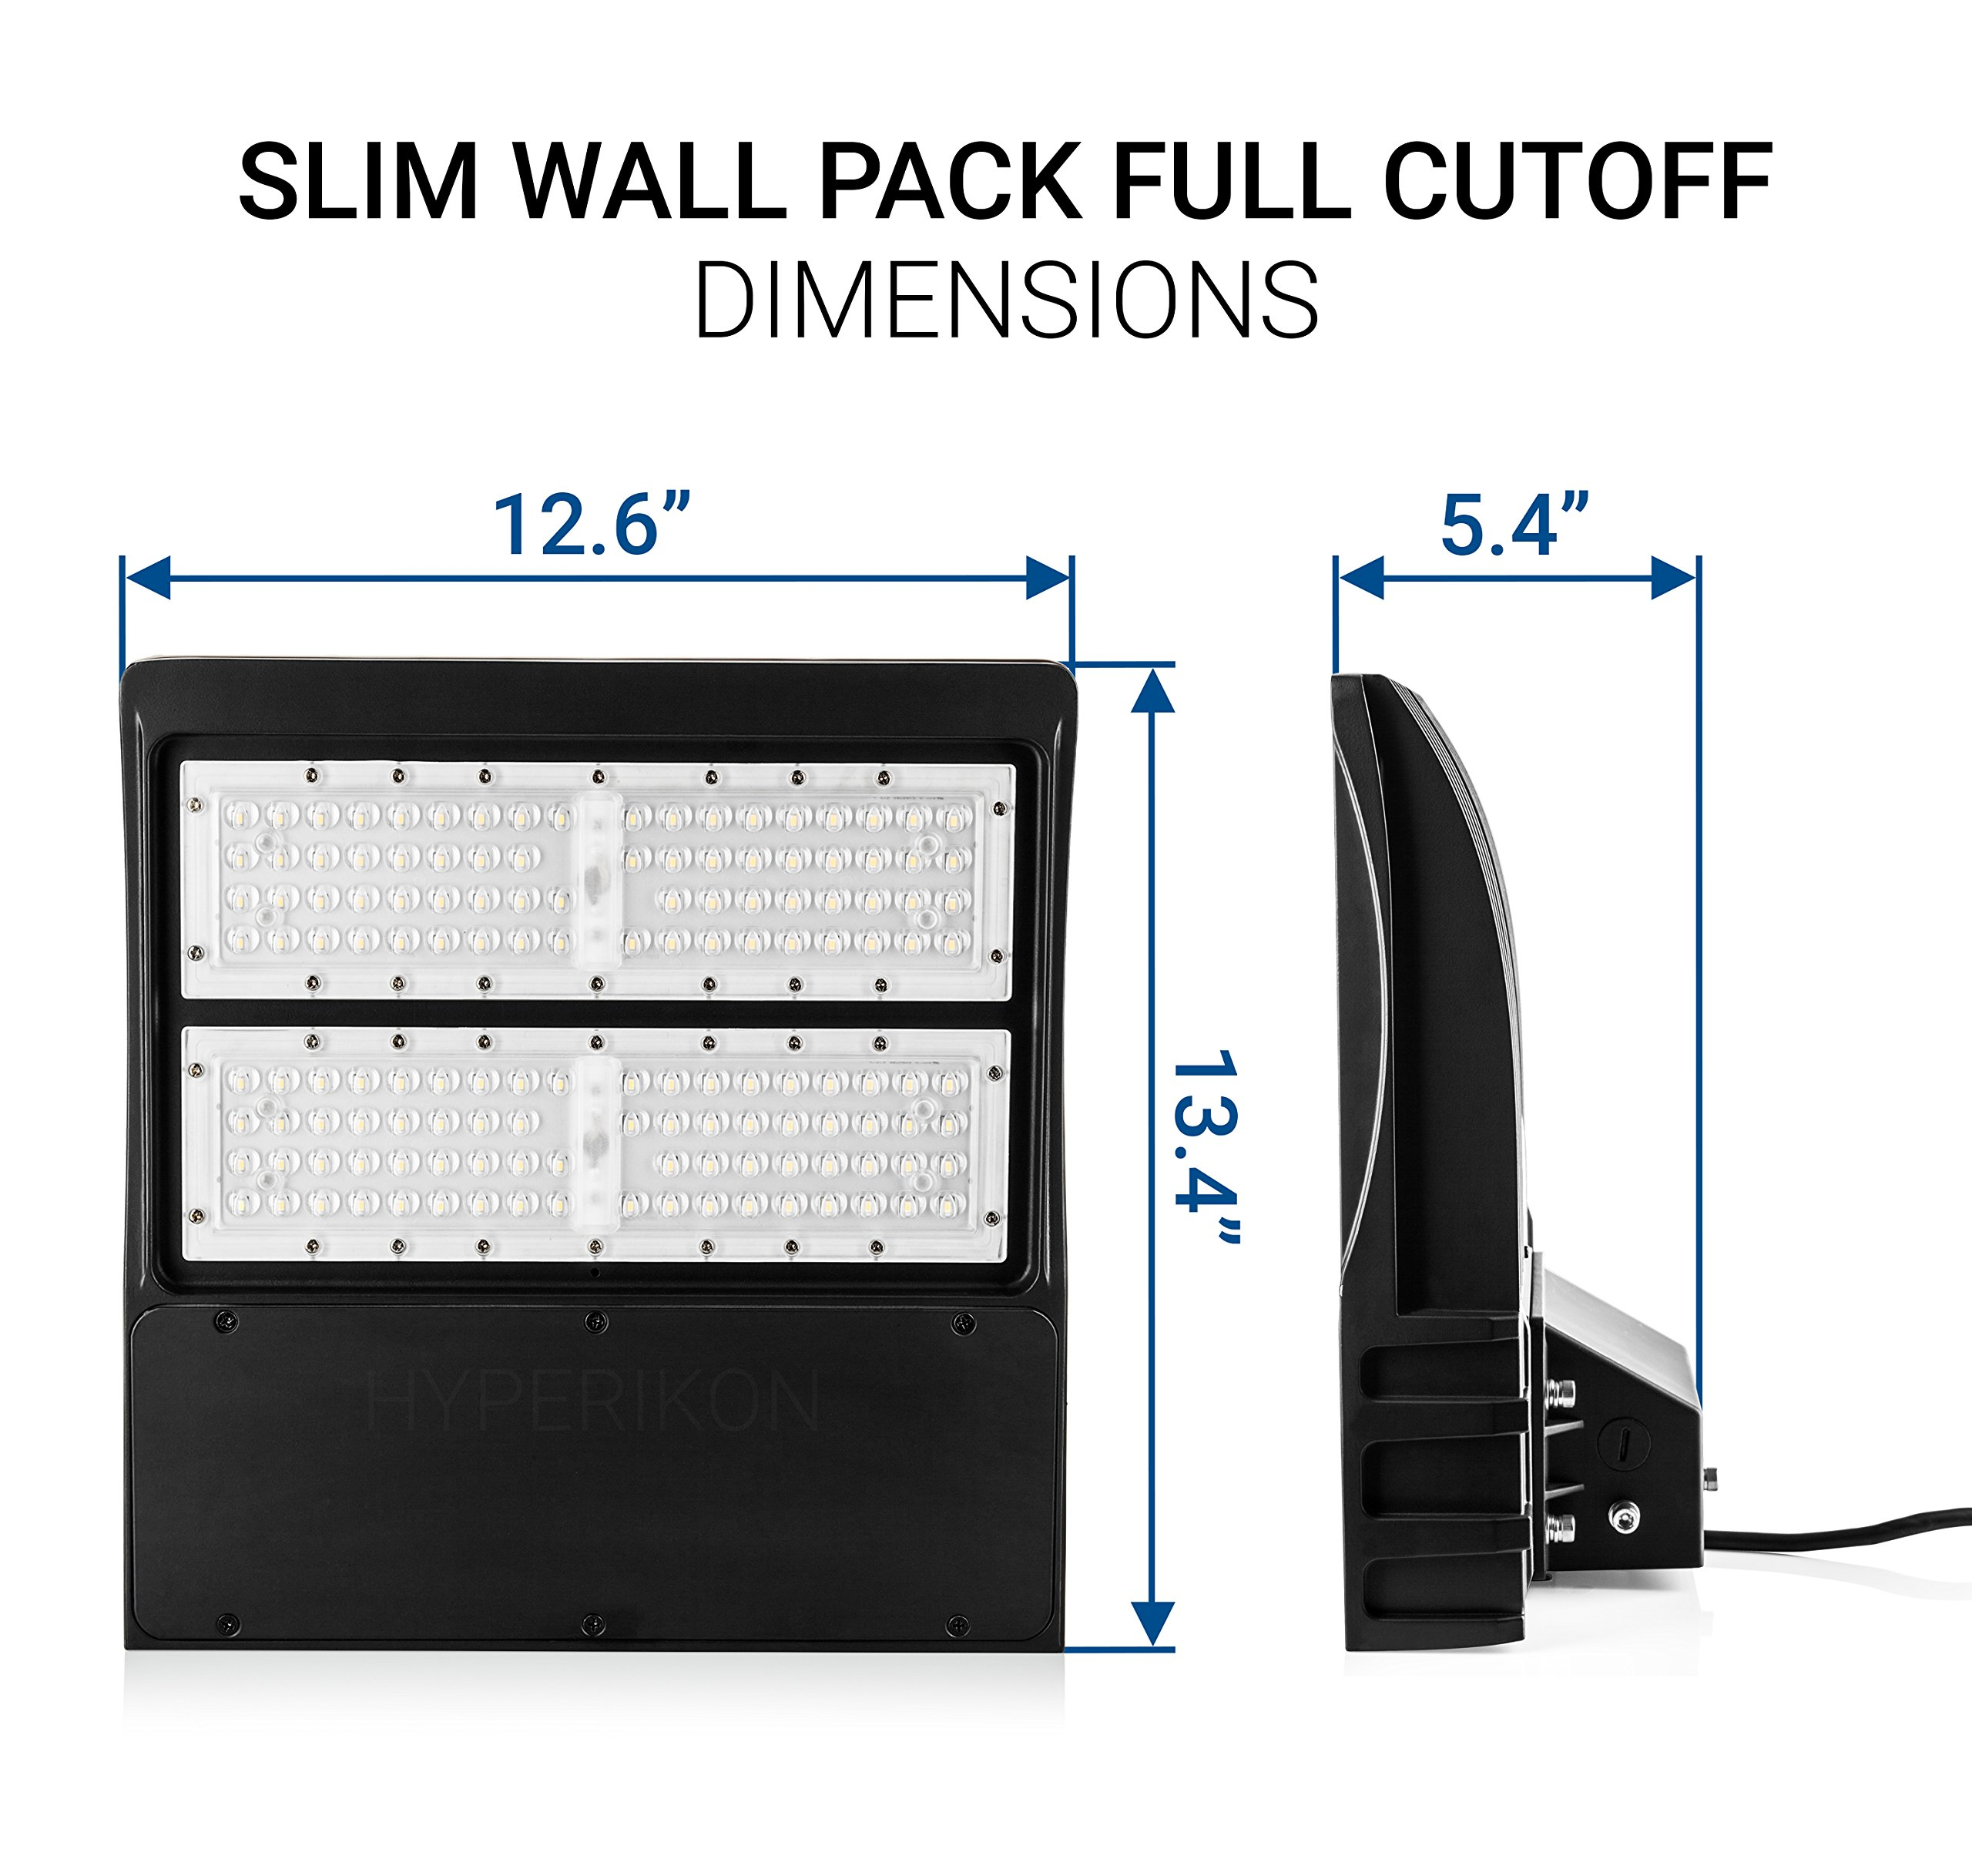 Hyperikon LED Wall Pack Slim 80W, 5000K (Crystal White Glow),10400lm,Mounted Base,IP65 Waterproof Dustproof,Full Cutoff–Outdoor Wall Packfor Security Light, Professional Use, Building Light by Hyperikon